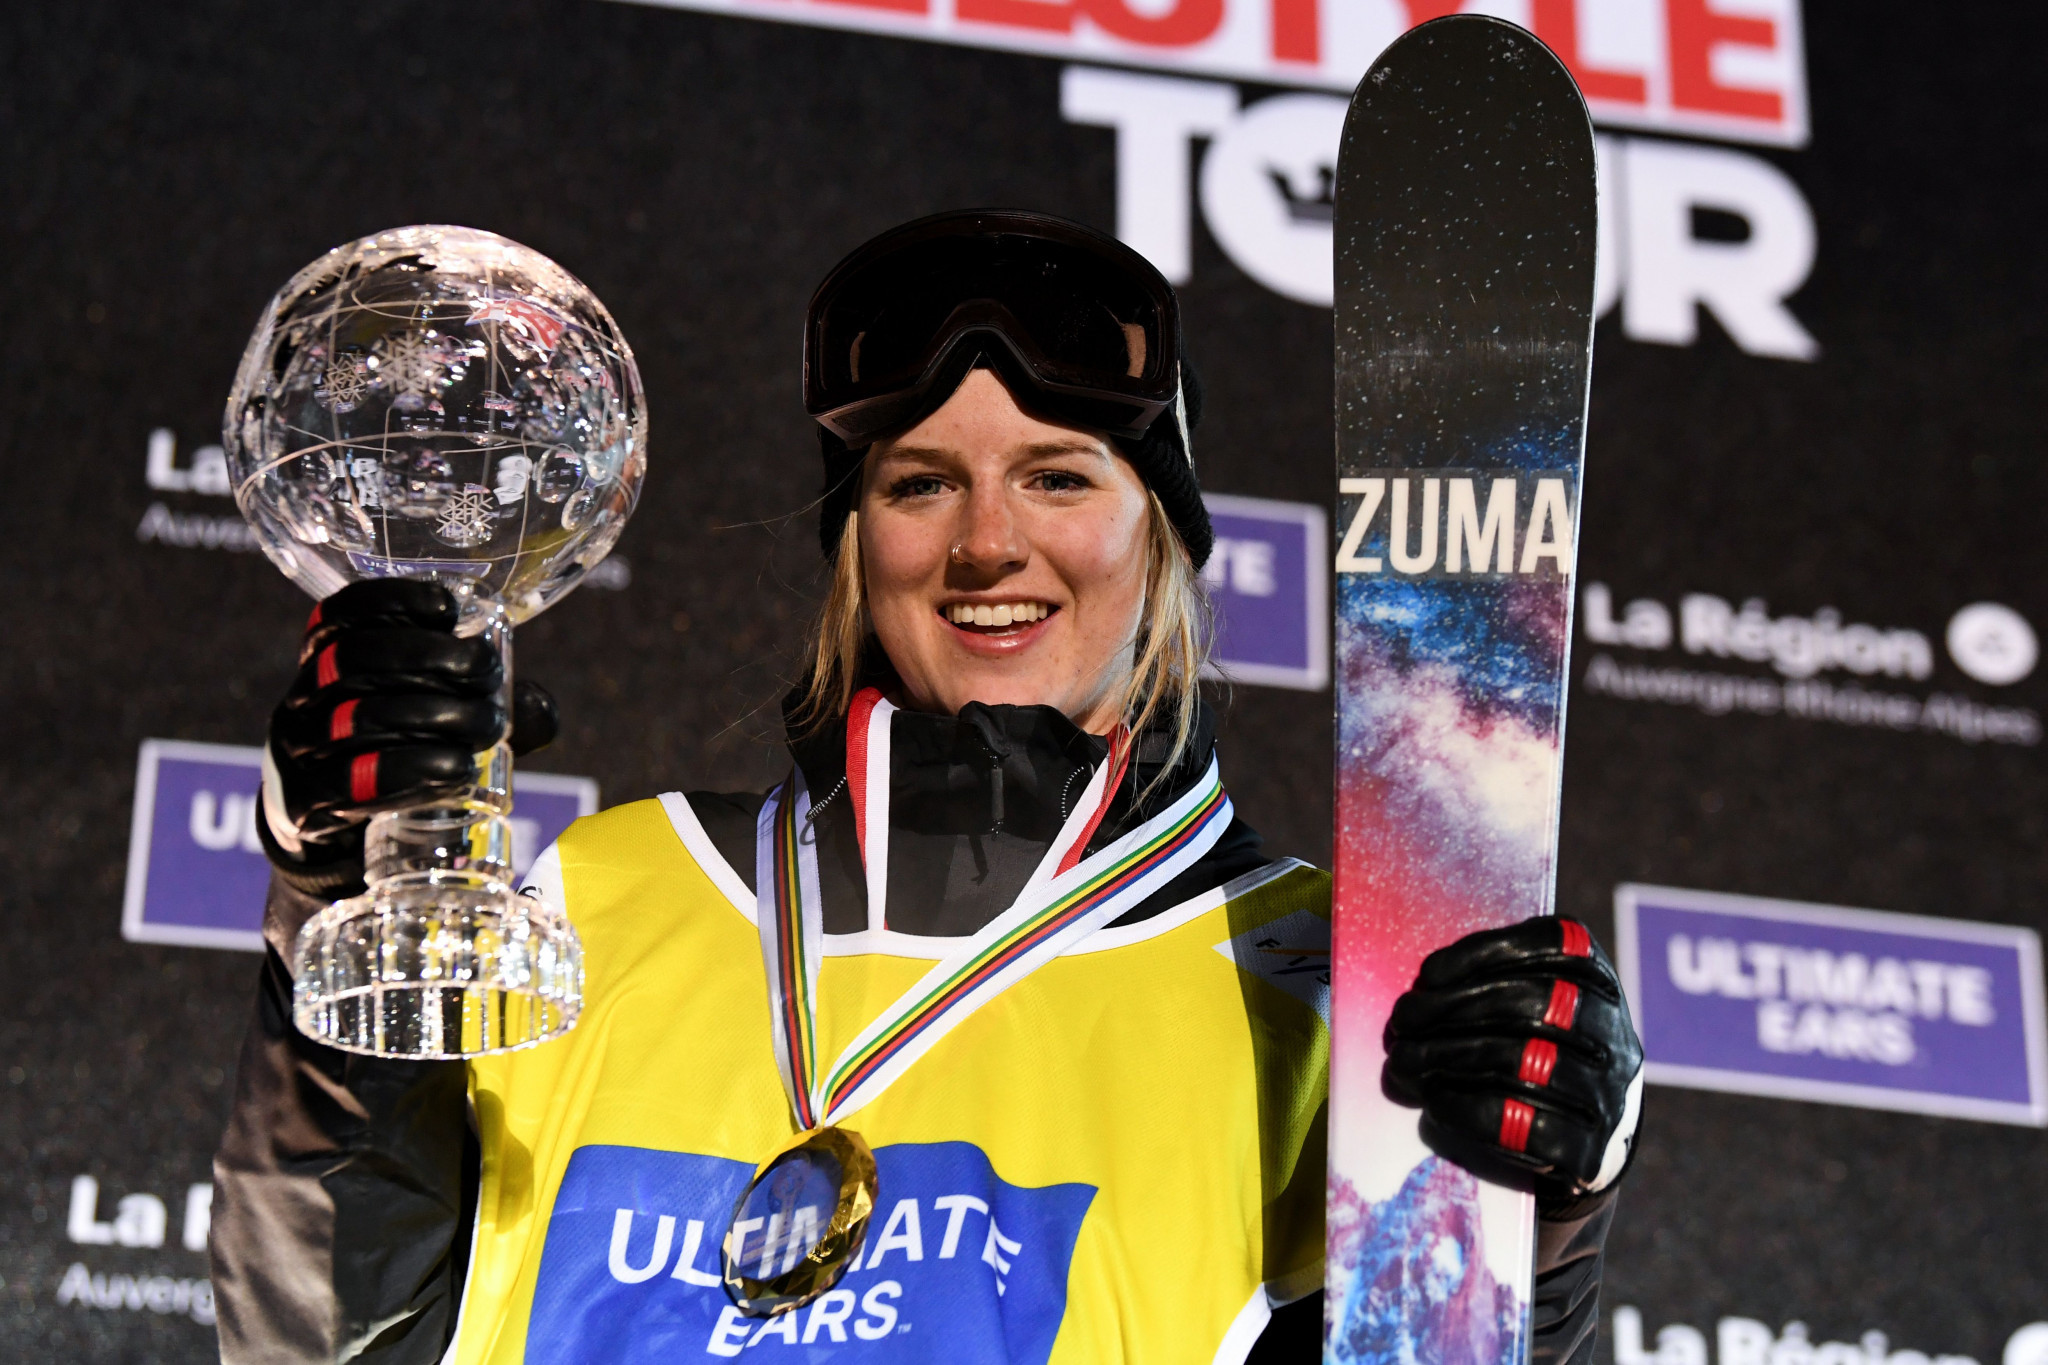 Sharpe and Ferreira crowned as overall champions at FIS Ski Halfpipe World Cup